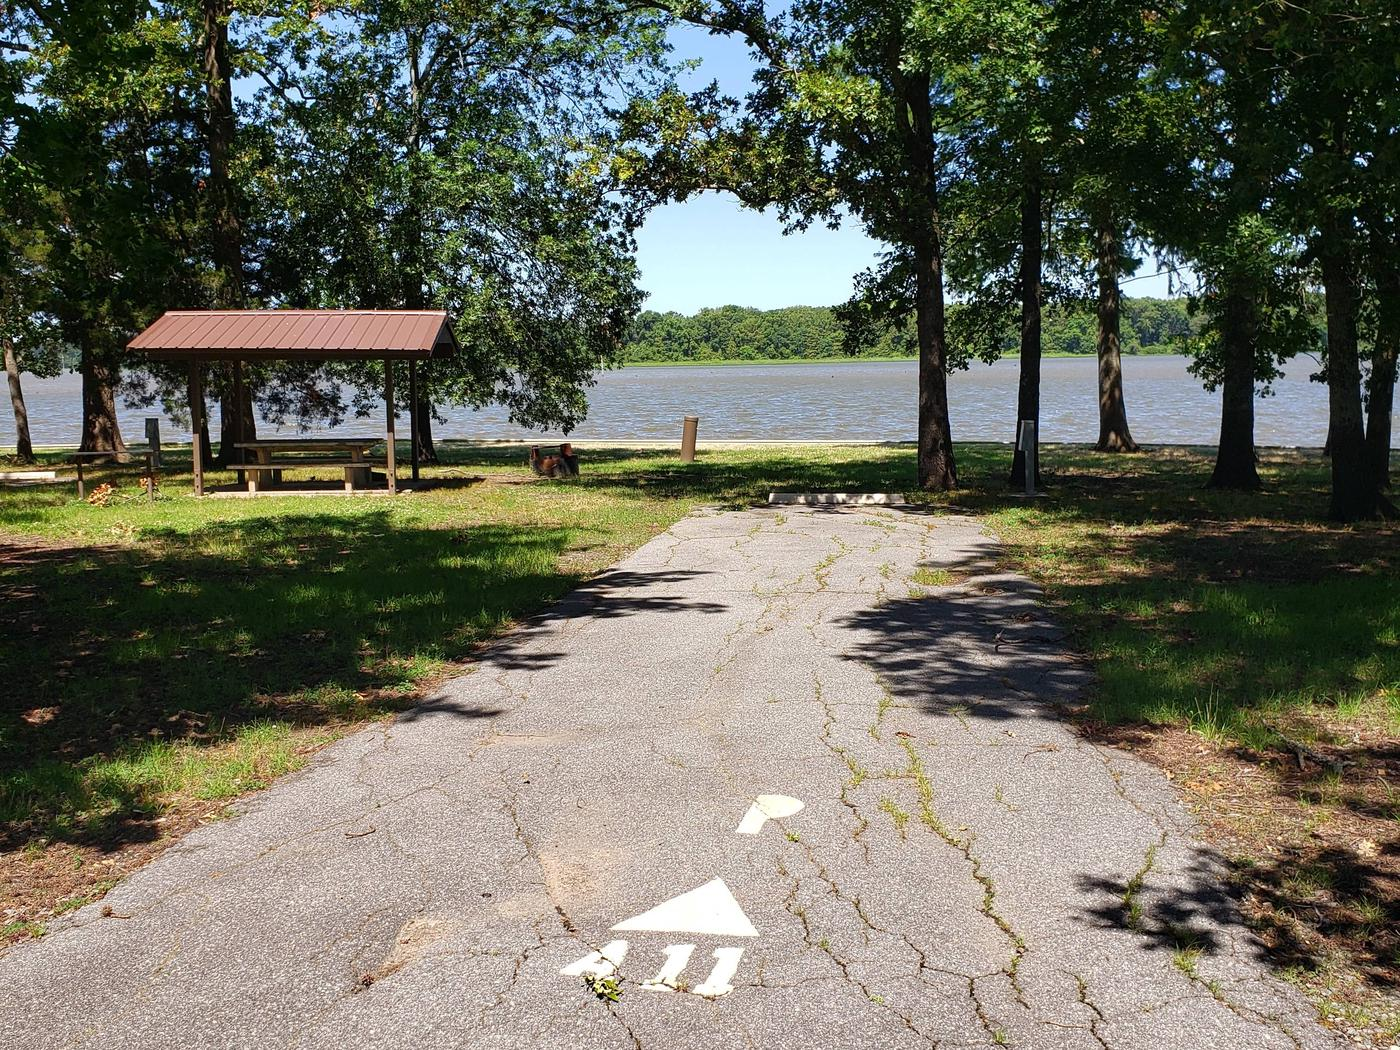 150 yards to Shower/Restroom. 100 Yards to Lake Merrisach Access.A-11